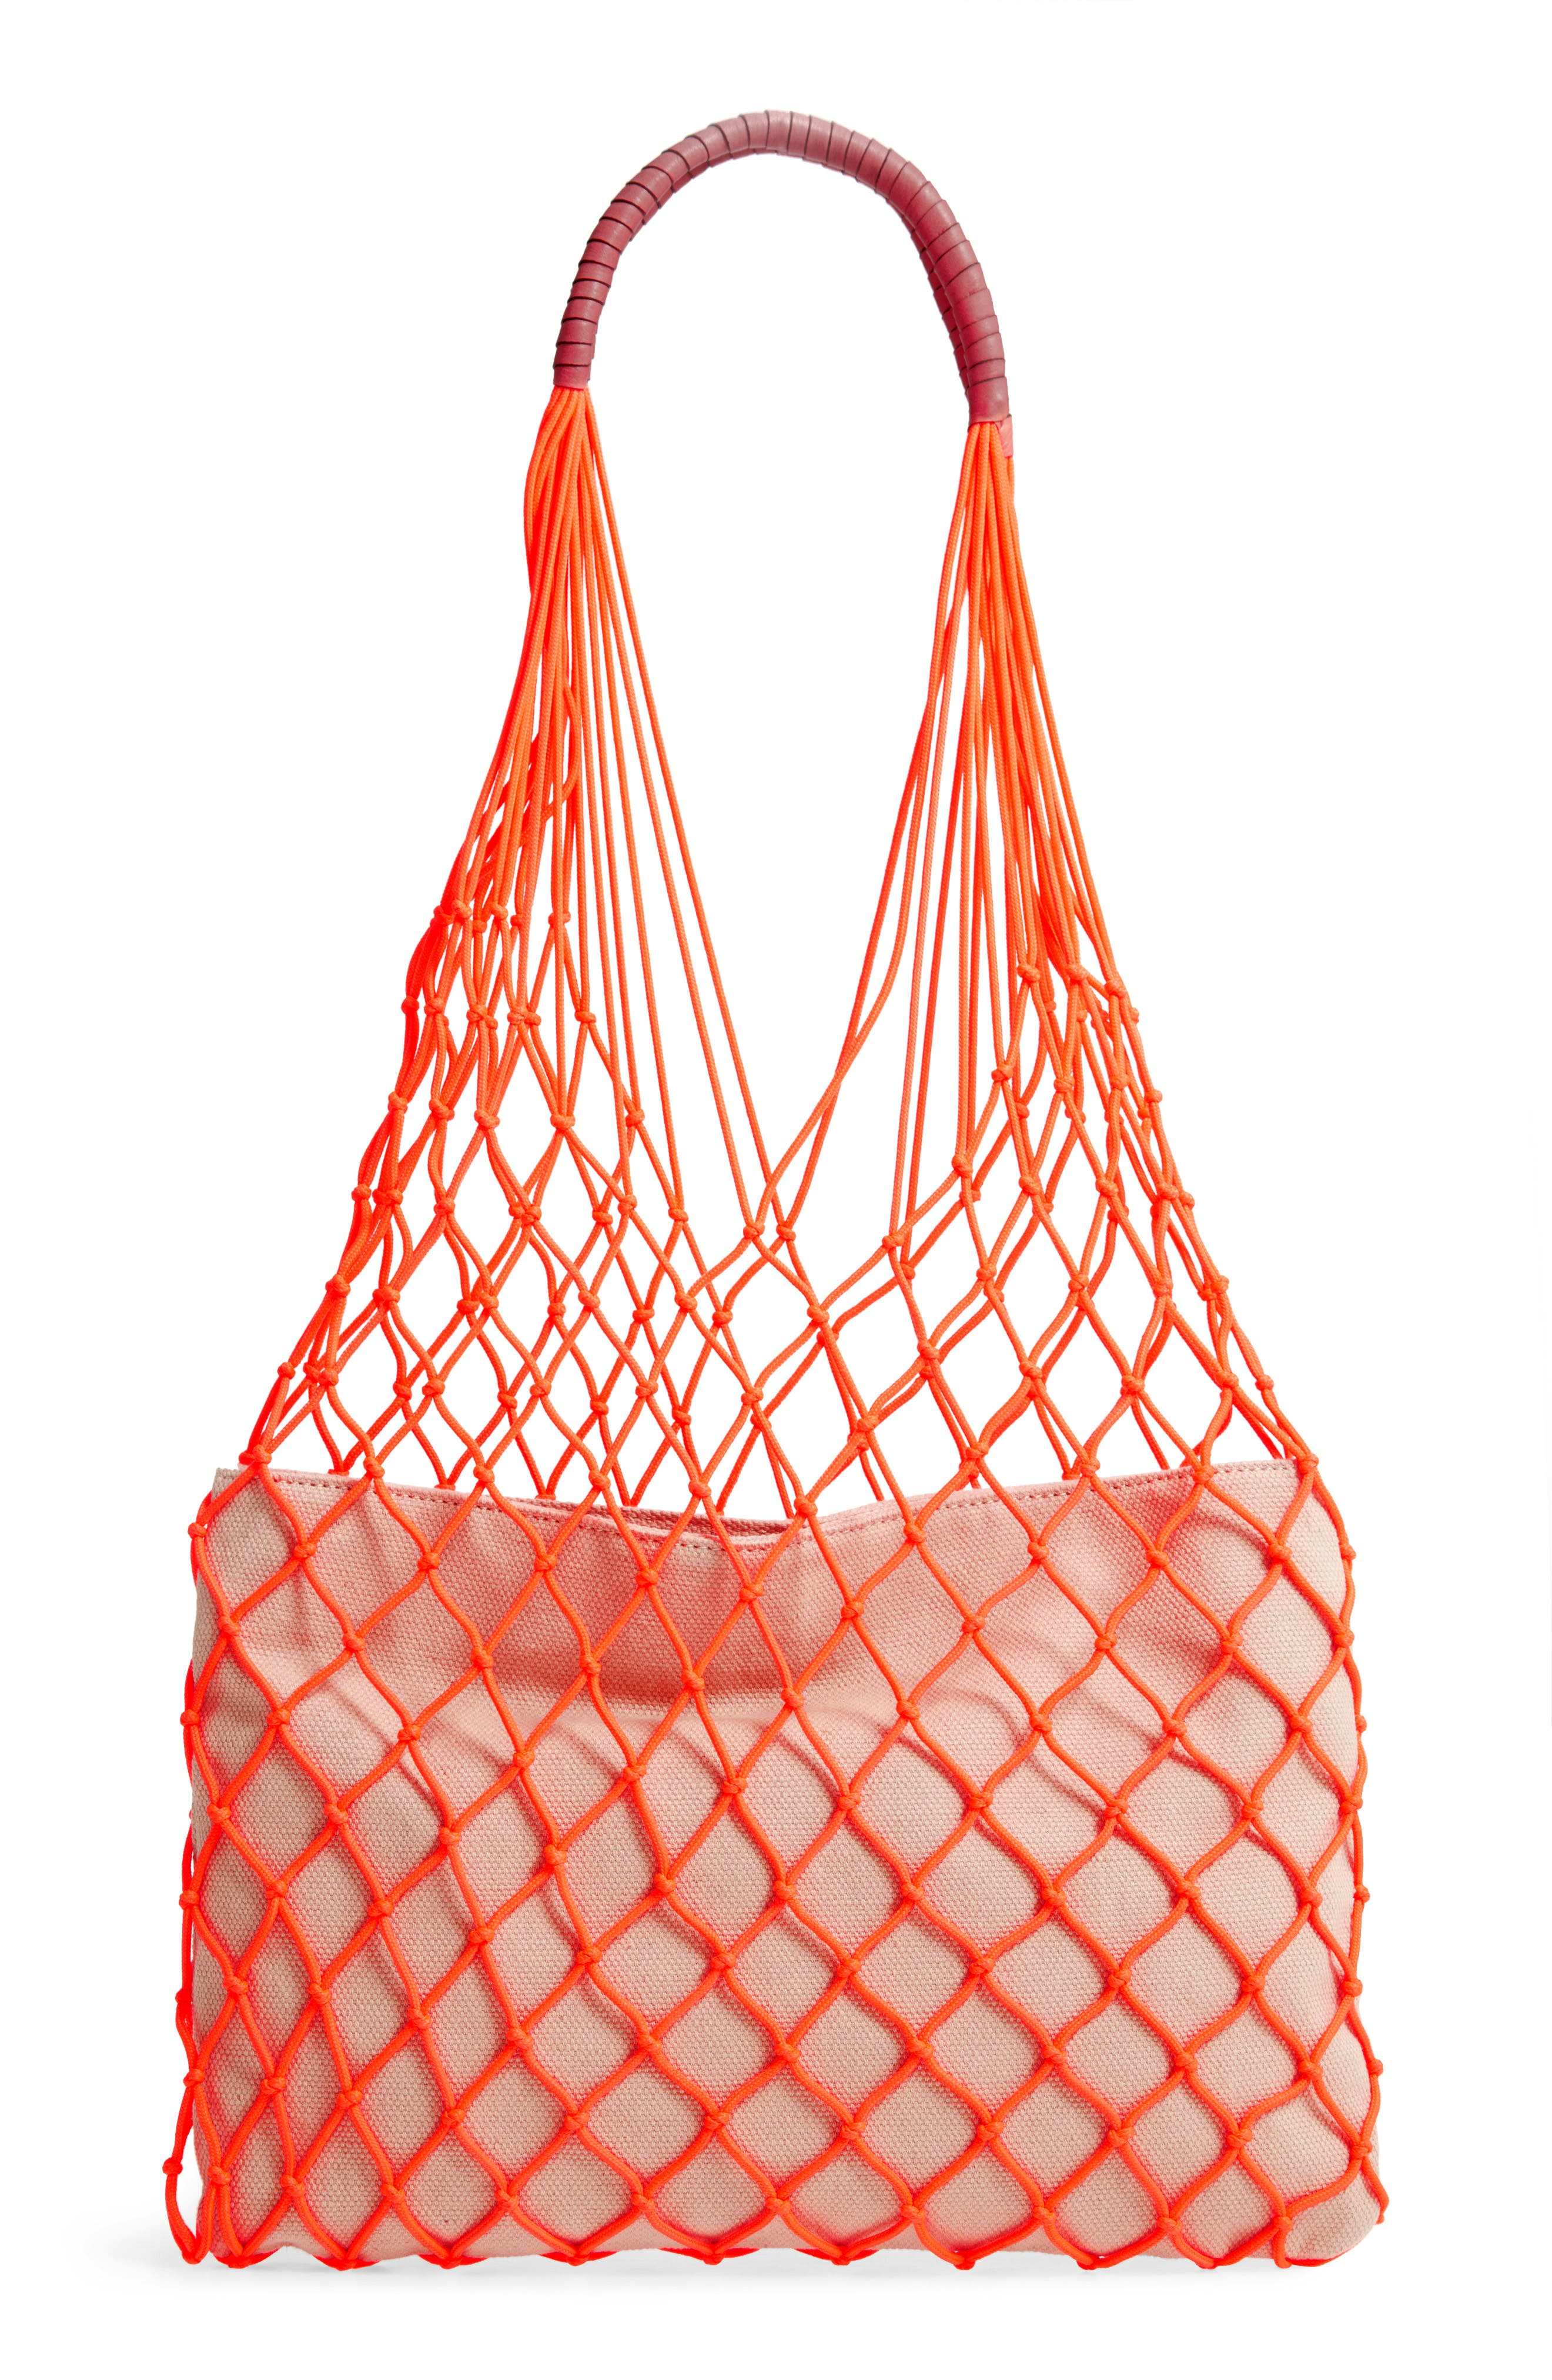 VINCE CAMUTO, Zest Tote, Main thumbnail 1, color, FIERY CORAL